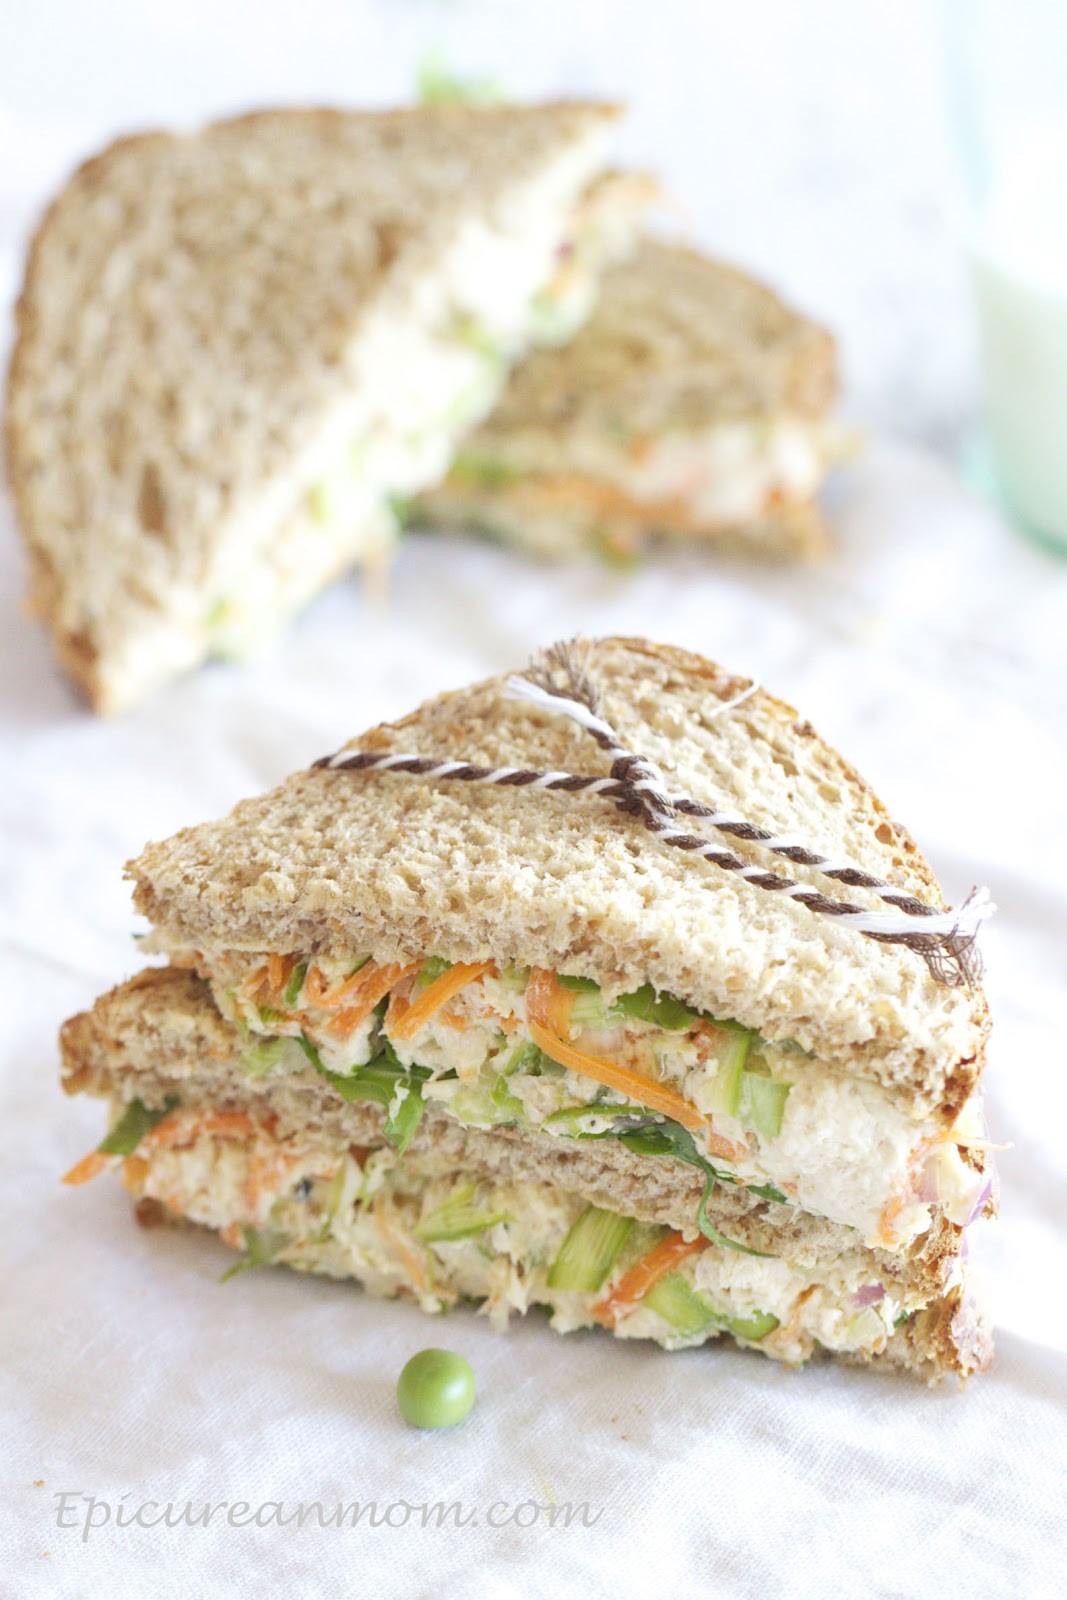 Is Chicken Salad Healthy  Epicurean Mom Healthy Chicken Salad Sandwich Recipe